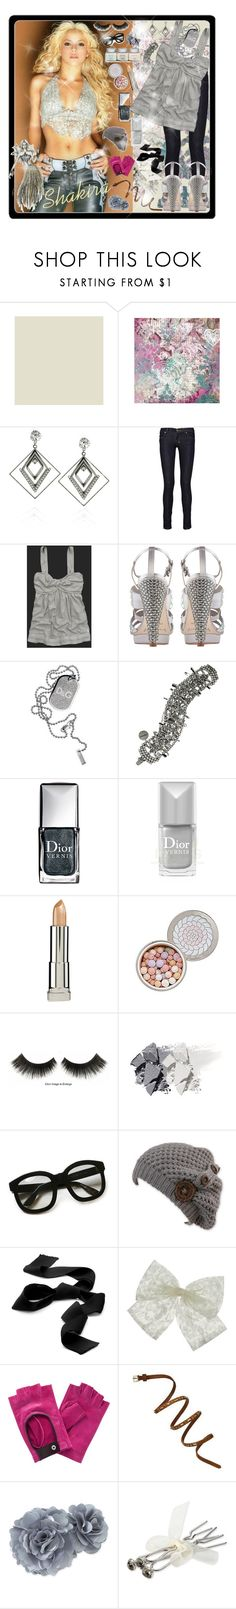 """""""Shakira"""" by andrej4e-xoxo ❤ liked on Polyvore featuring Maybelline, DANNIJO, Ksubi, Abercrombie & Fitch, D&G, Tom Binns, Christian Dior, Guerlain, Emmanuelle Khanh and Hermès"""